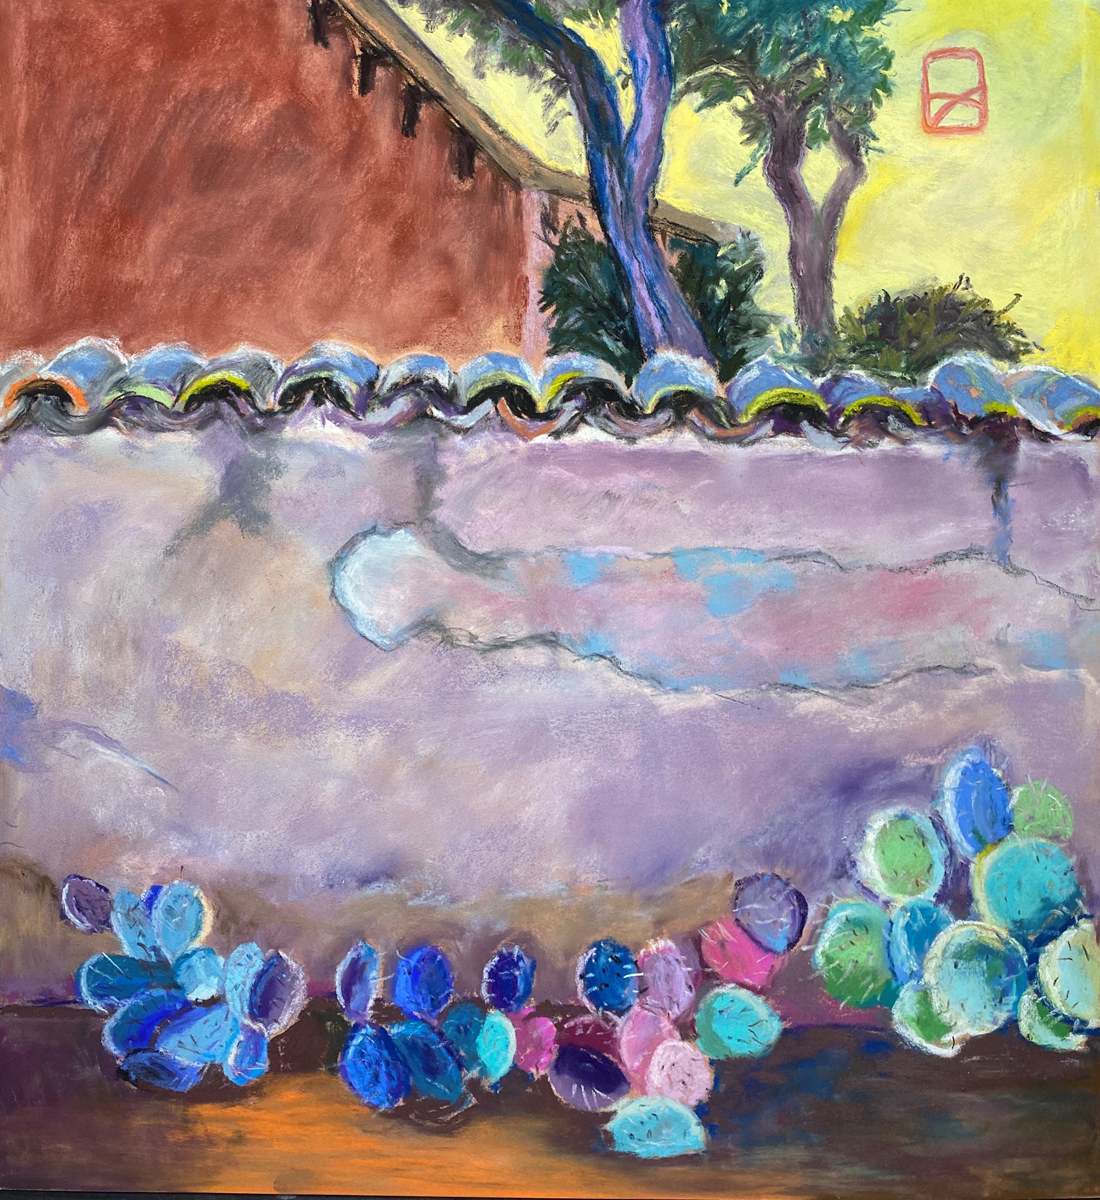 Dunker Susan, Cemetery Wall Mission San Miguel, 19x17, $800